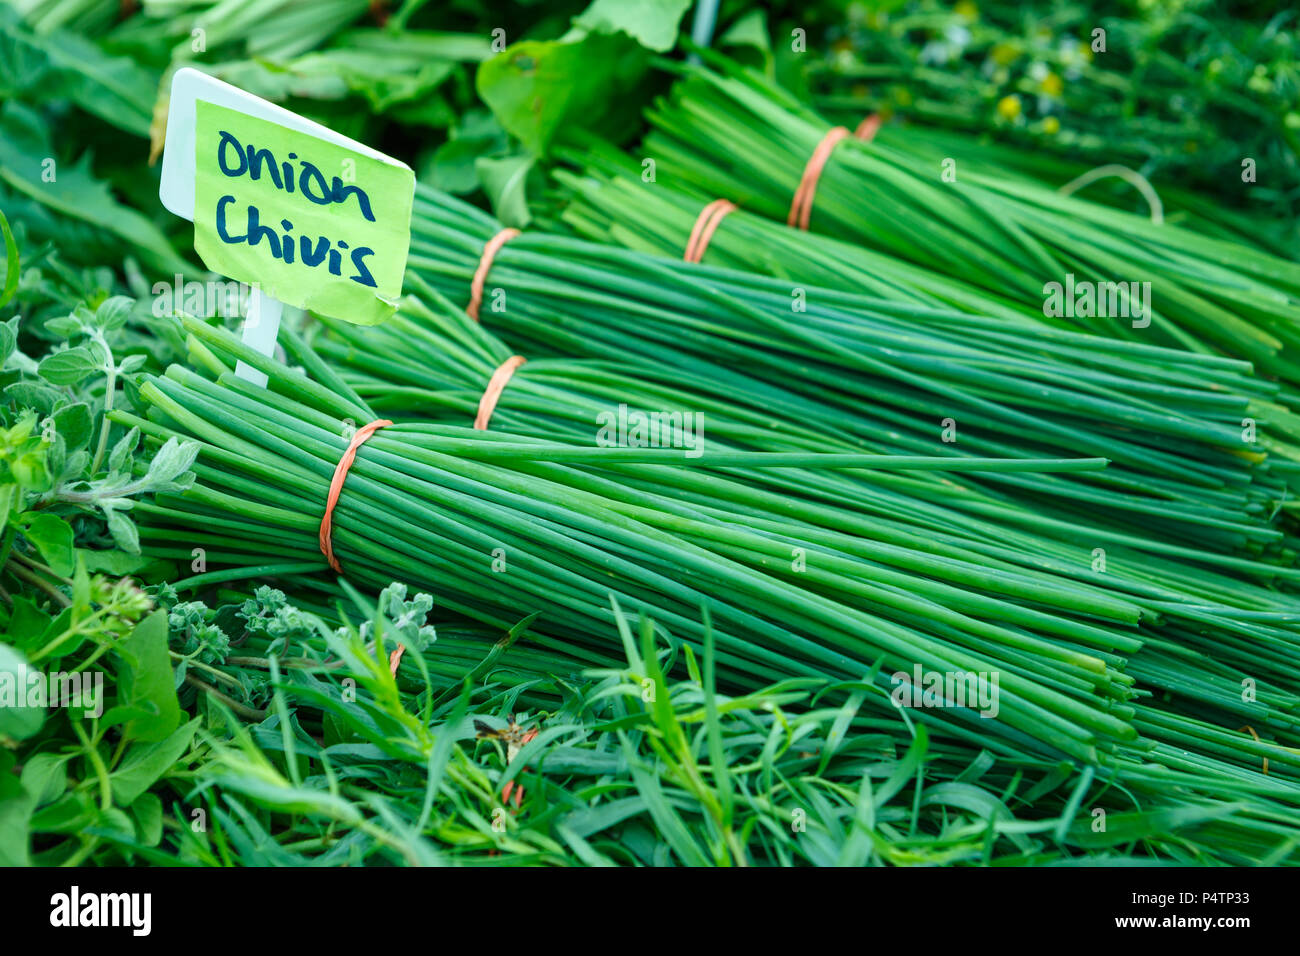 Fresh Onion Chives at a Local Farmer's Market - Stock Image